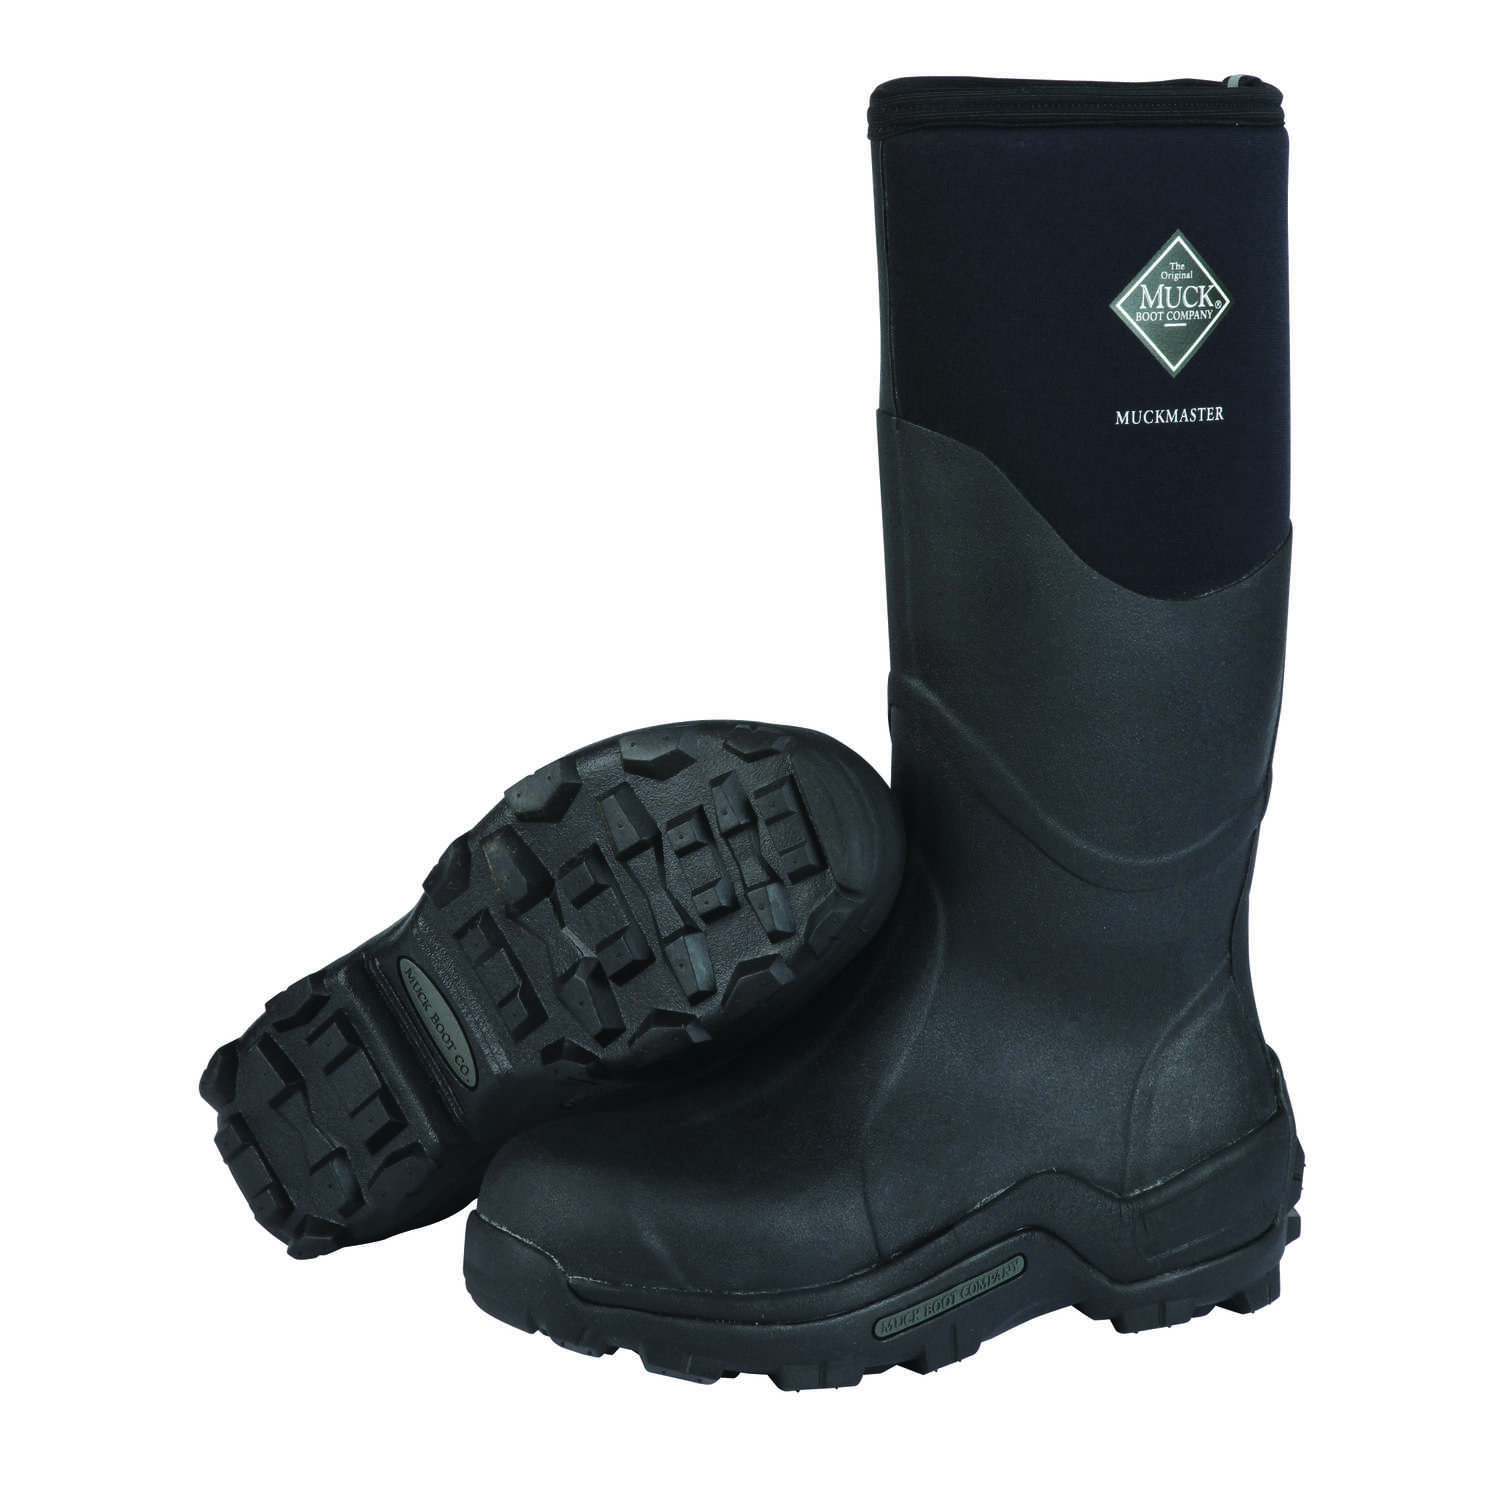 The Original Muck Boot Company  Muckmaster  Men's  Boots  13 US  Black